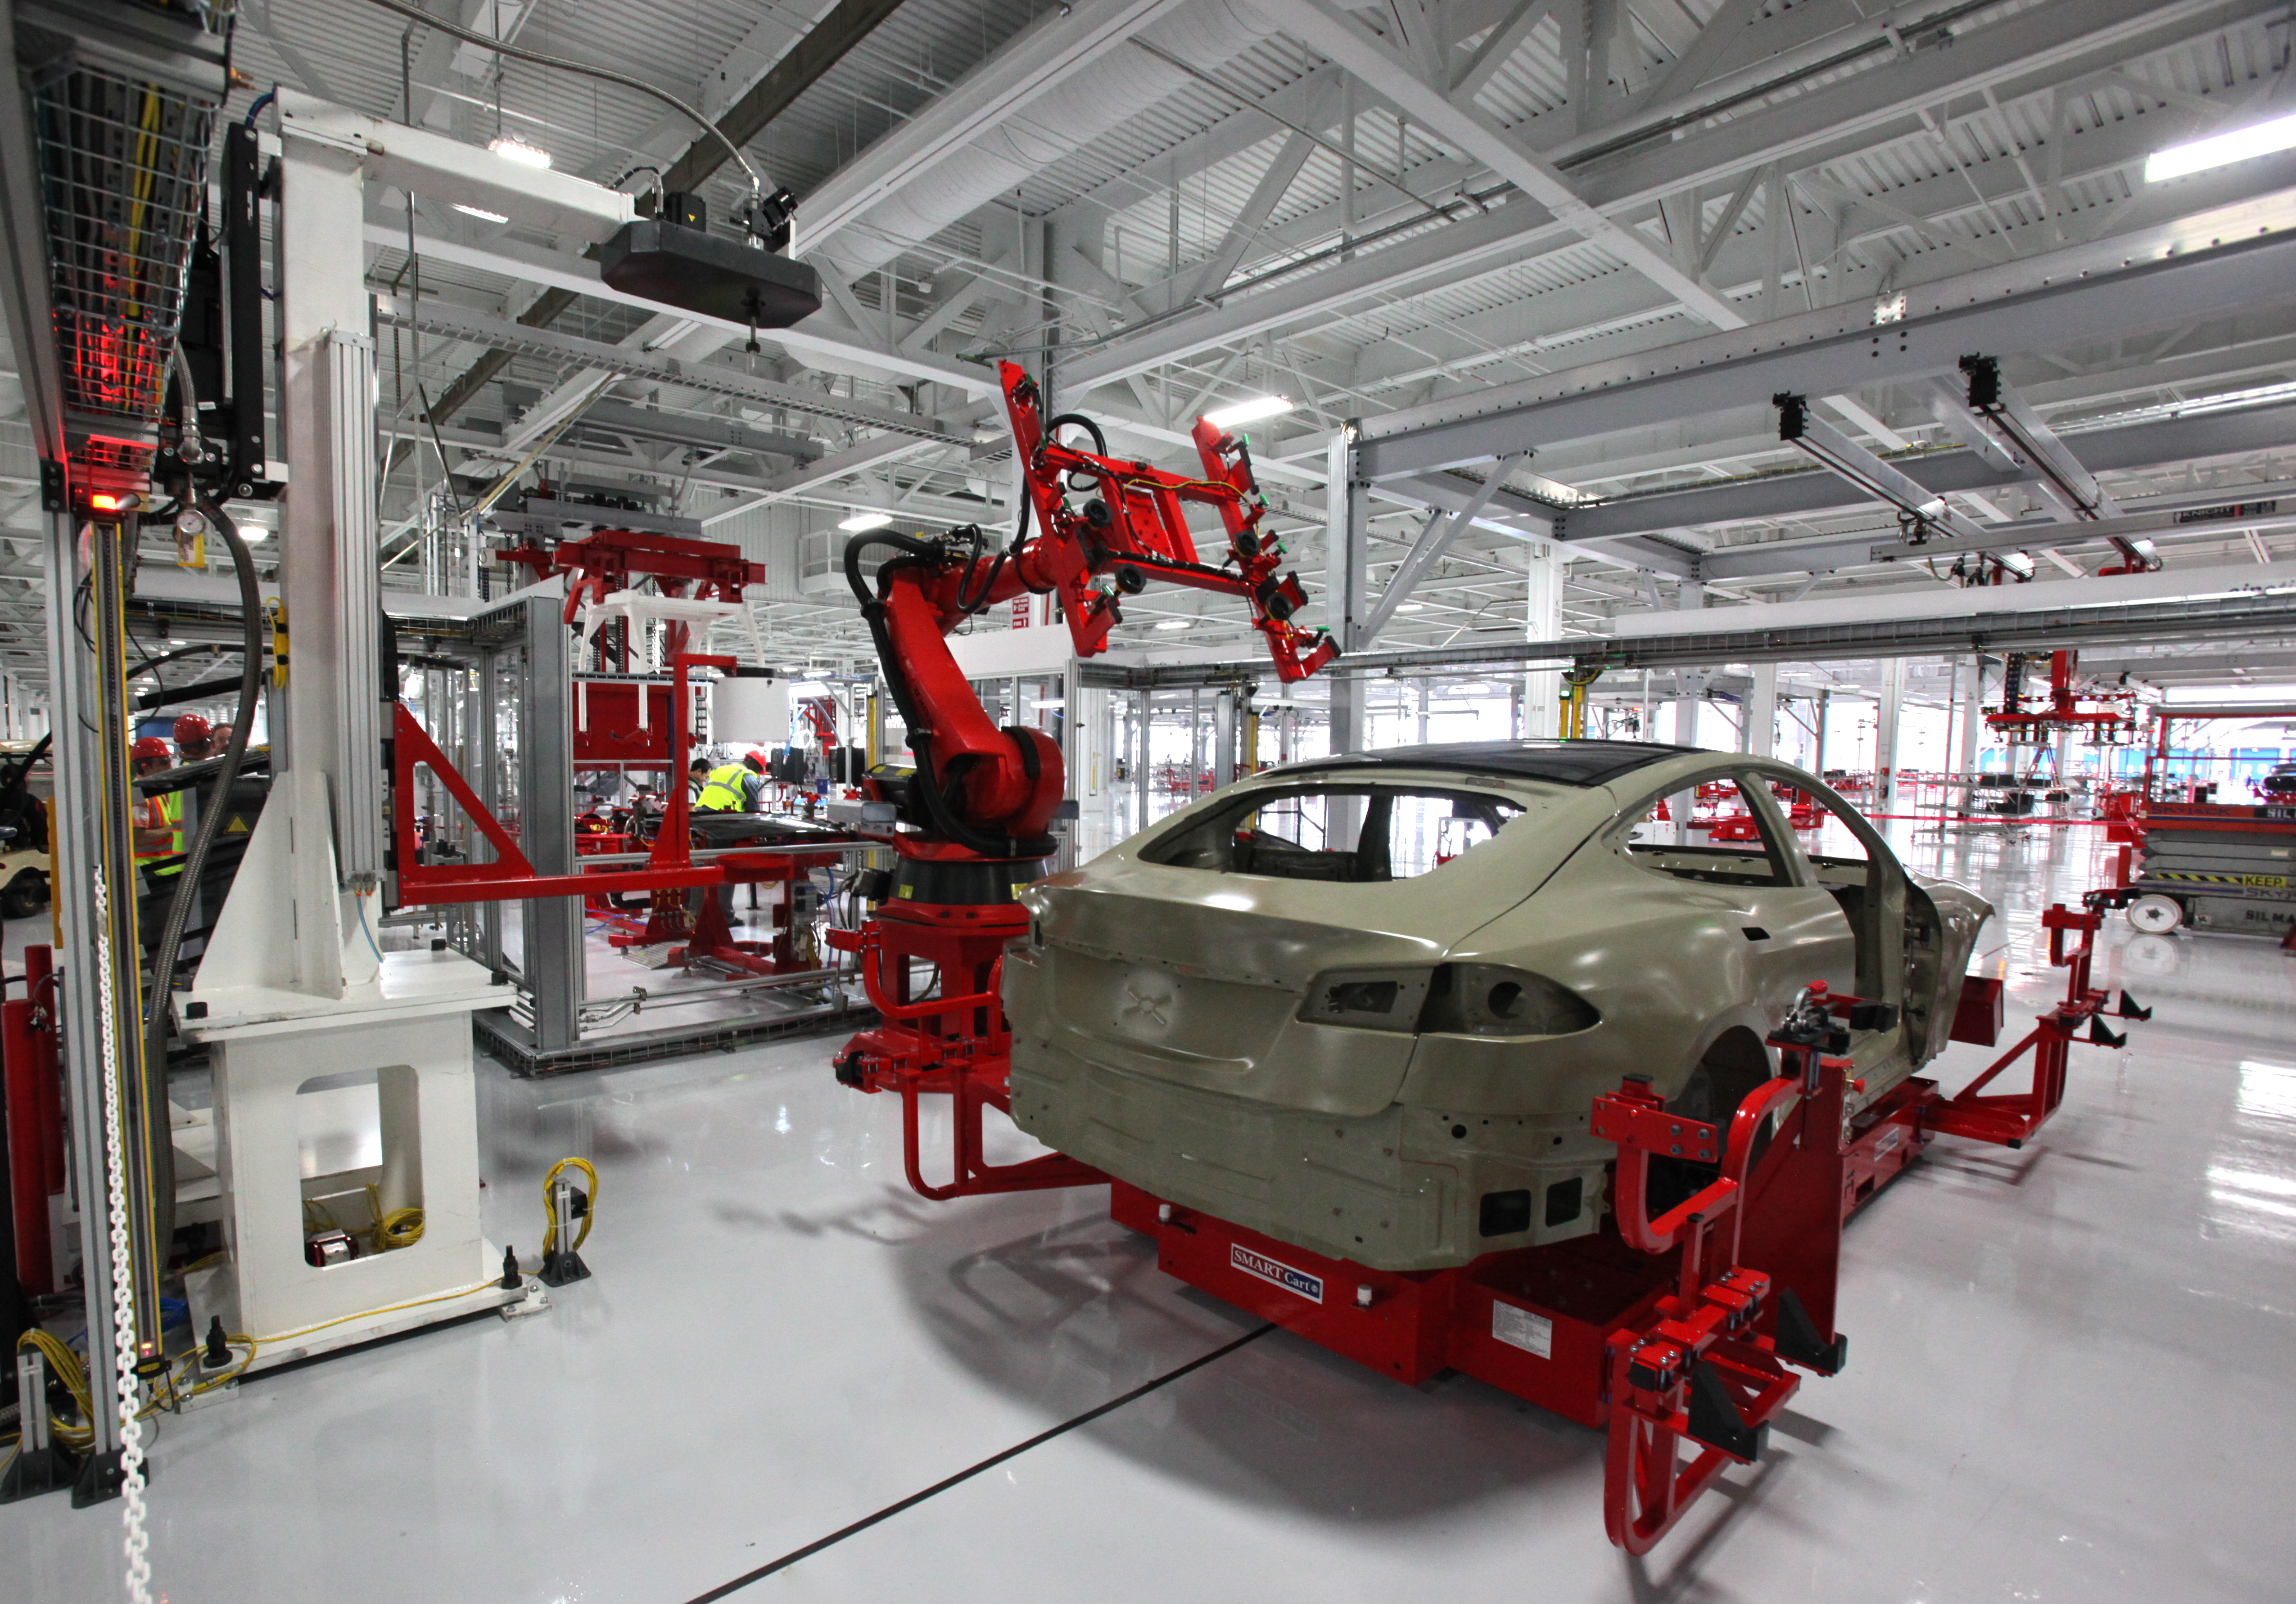 Tesla Just Skipped a Big Step to Make Sure the Model 3 is On Time ...